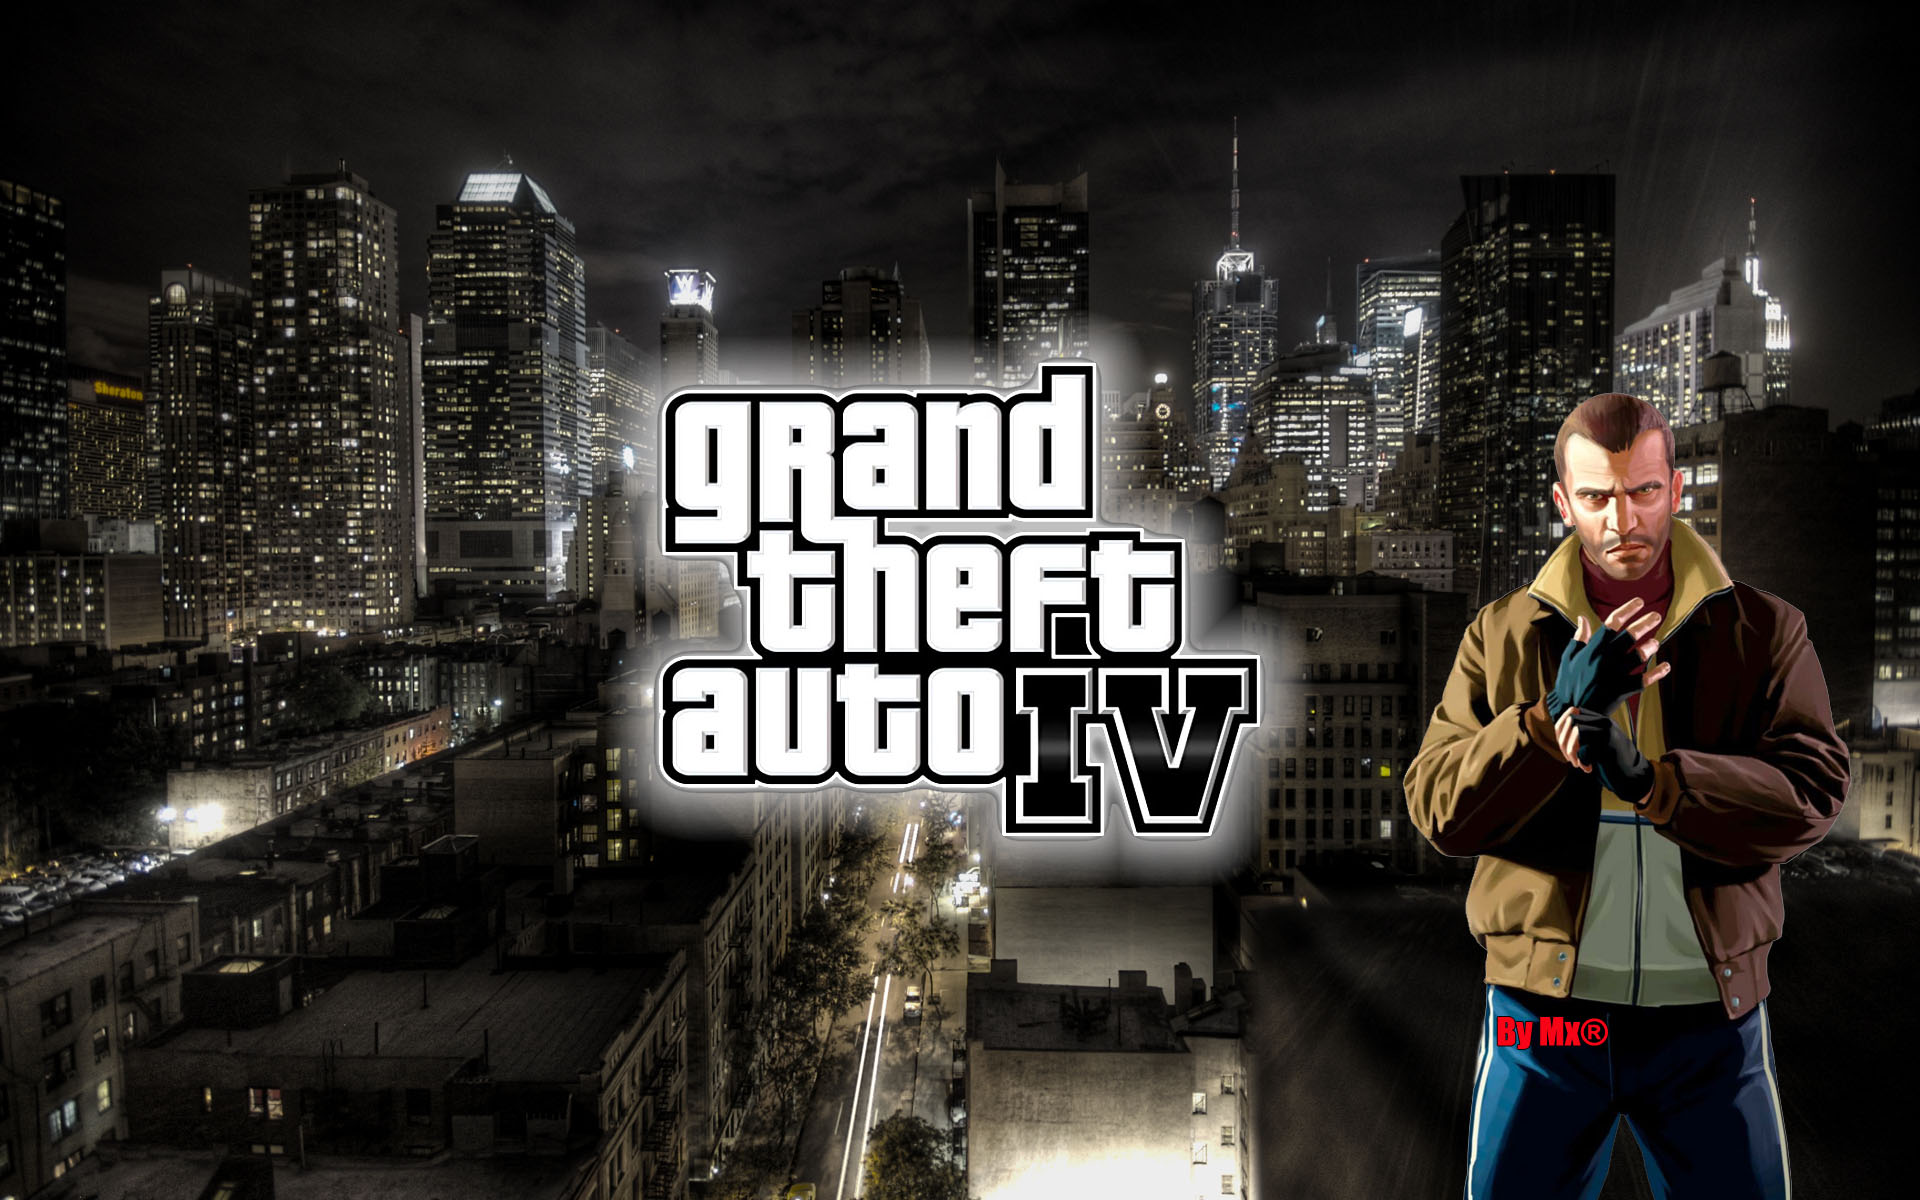 Grand Theft Auto 5 Wallpaper: Gta 5 Wallpapers, Pictures, Images